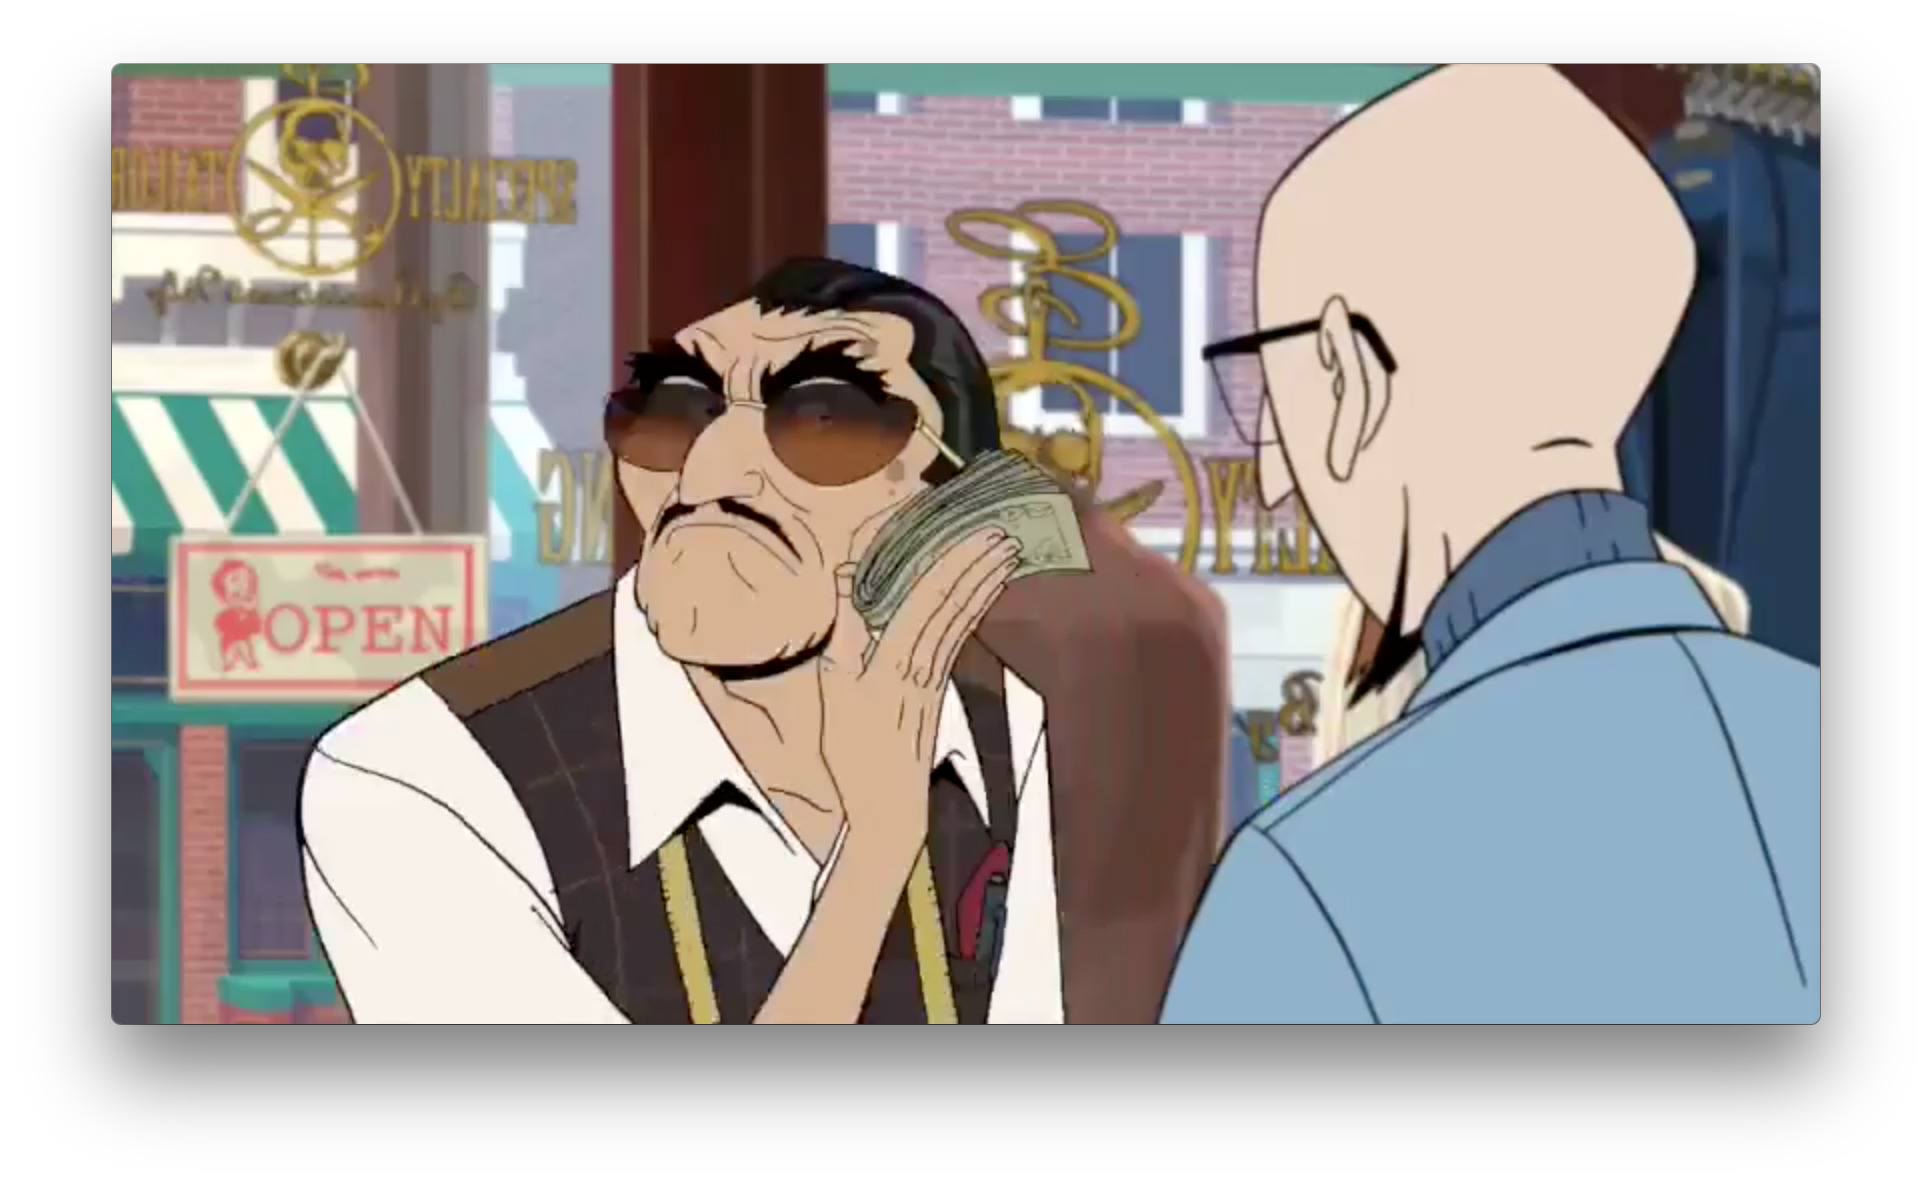 Dr. Venture pays a lot to a closed specialty tailor. Perhaps the beginnings of the family's fancy new outfits? Apparently,  he's a Sicilian named Enzo, and Doc has some history with him.